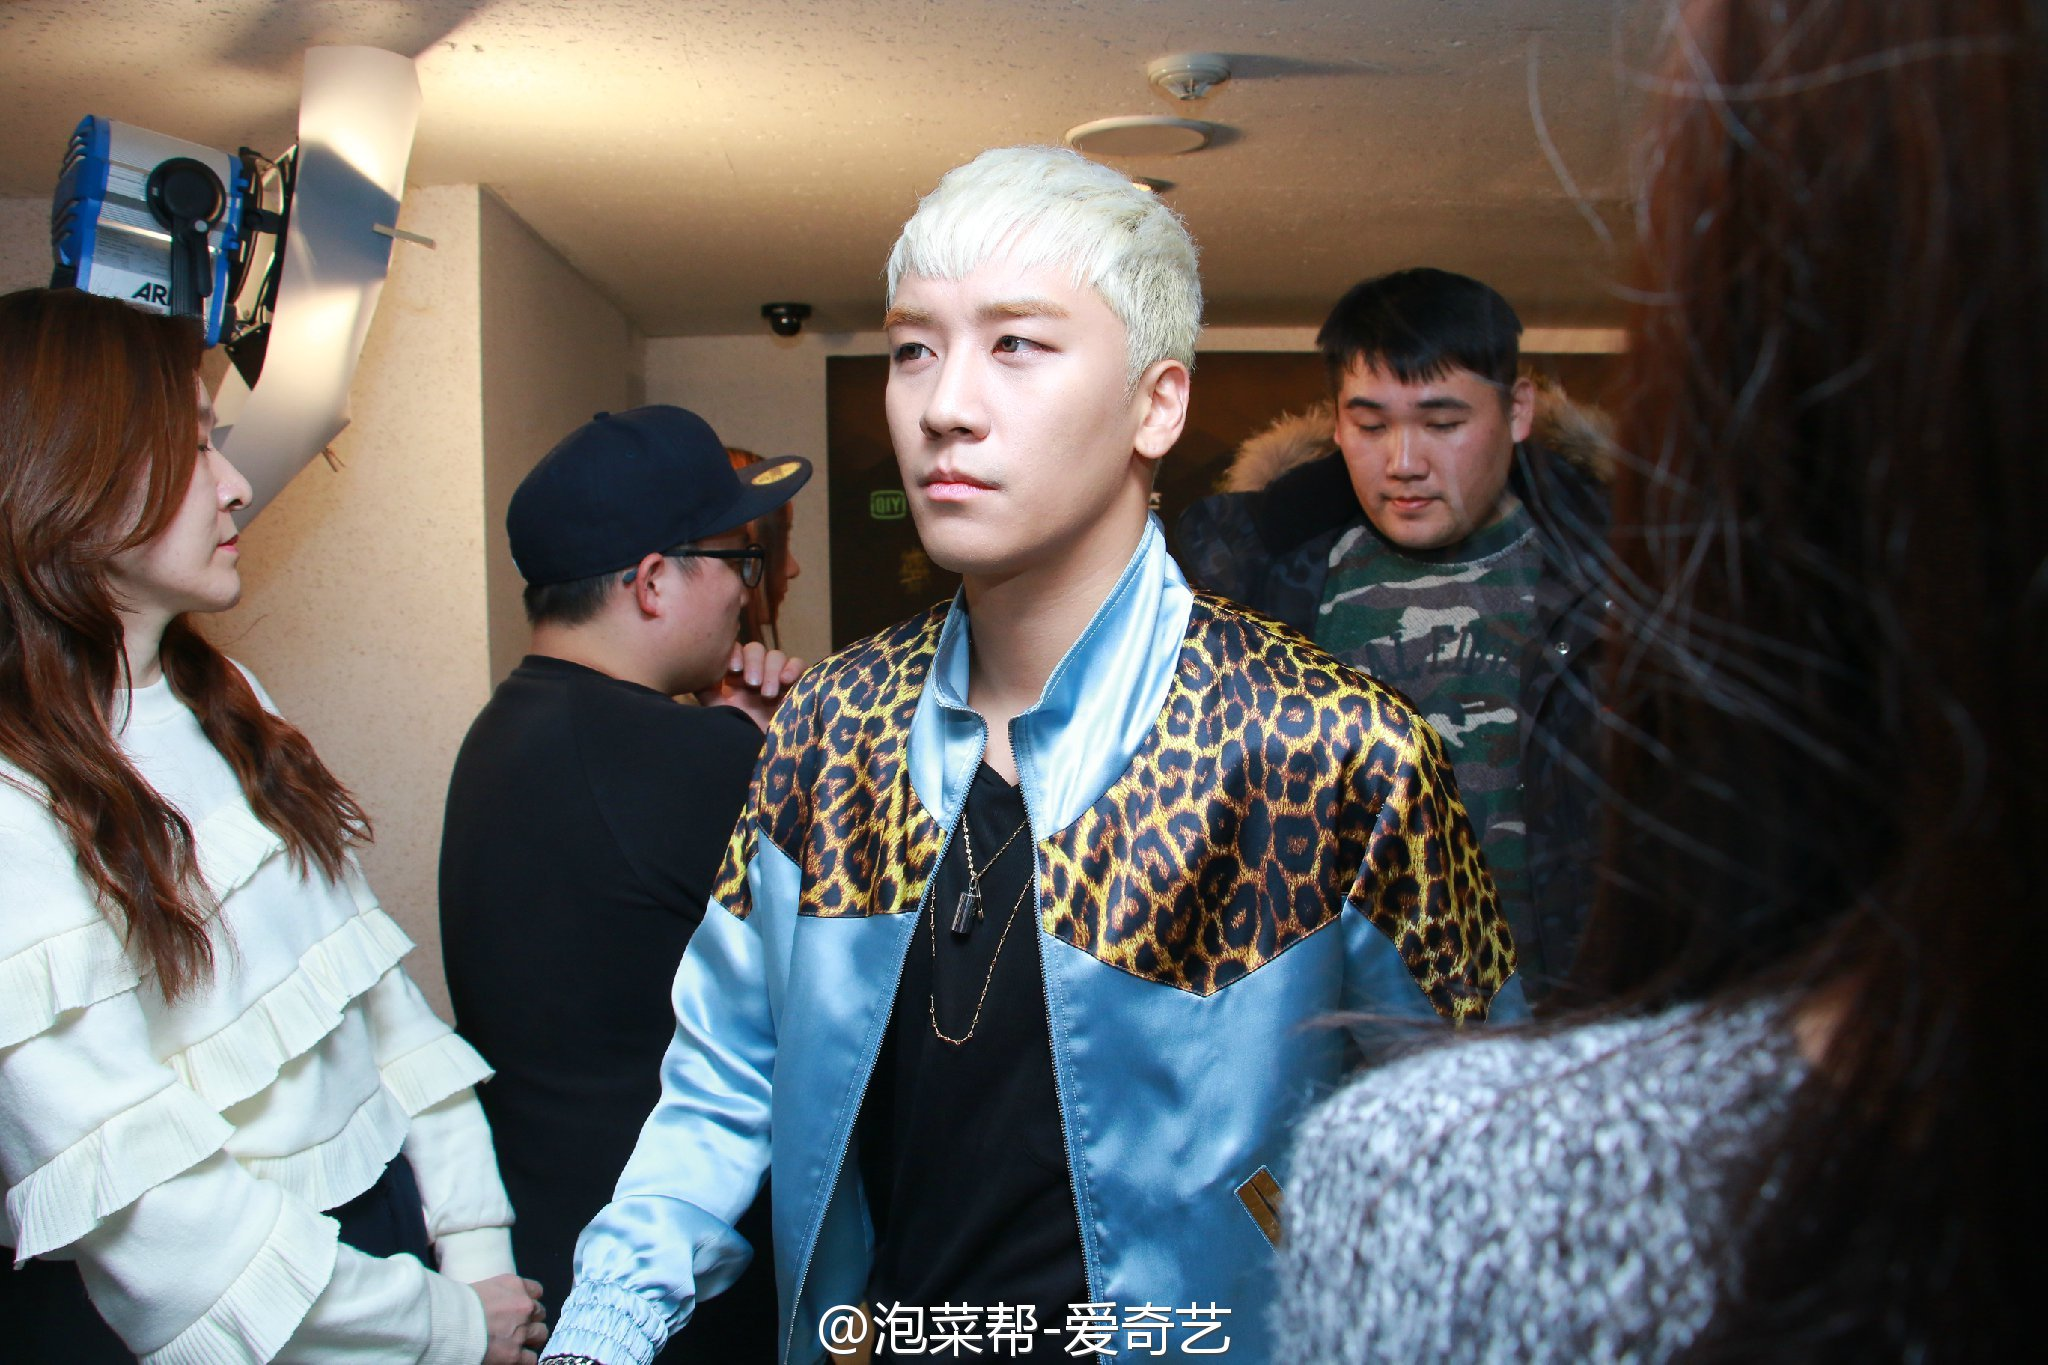 BIGBANG - Golden Disk Awards - Backstage - 20jan2016 - 泡菜帮-爱奇艺 - 10